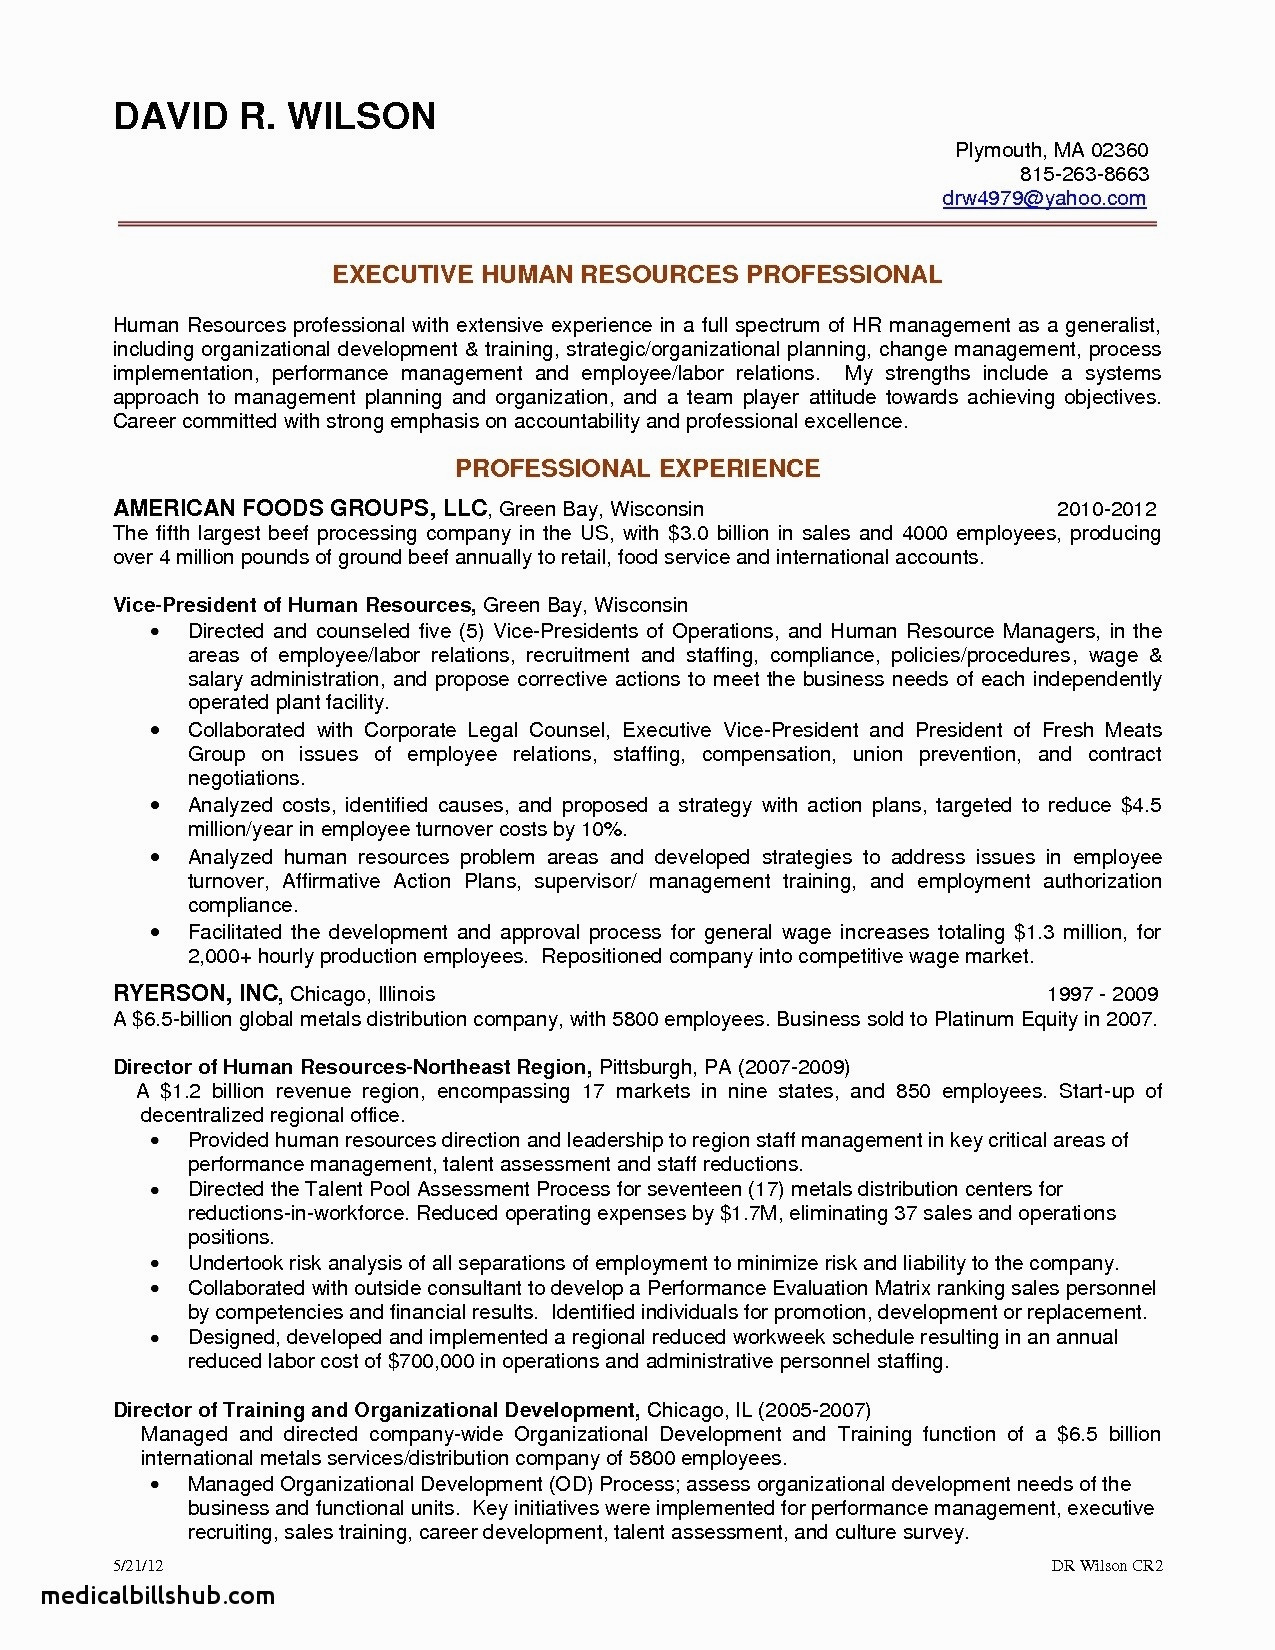 Executive Summary Resume Samples - Executive Resume Luxury top Resume Summary Examples It Project